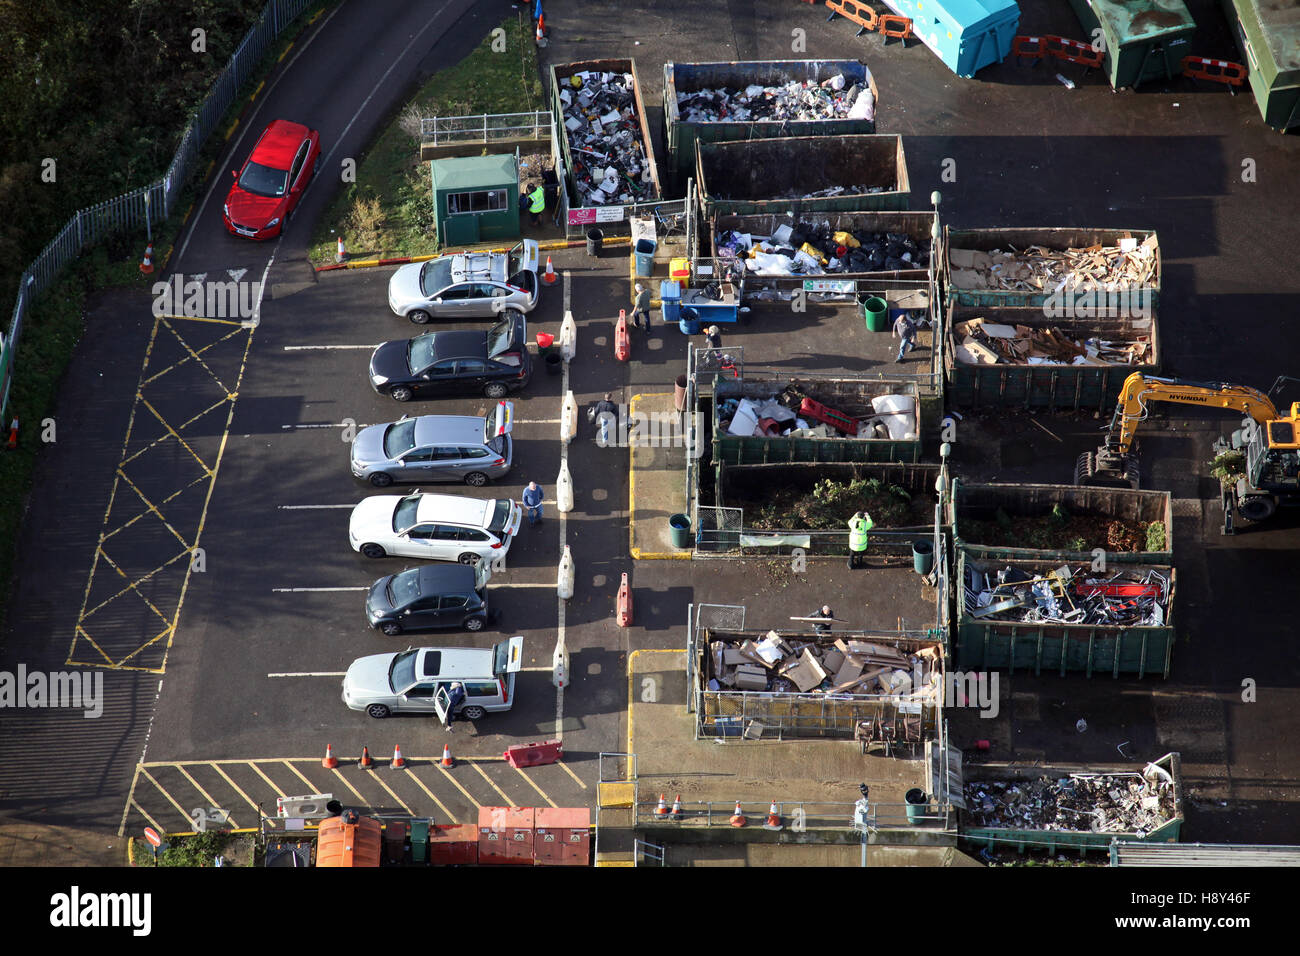 aerial view of domestic household waste recycling plant in UK - Stock Image